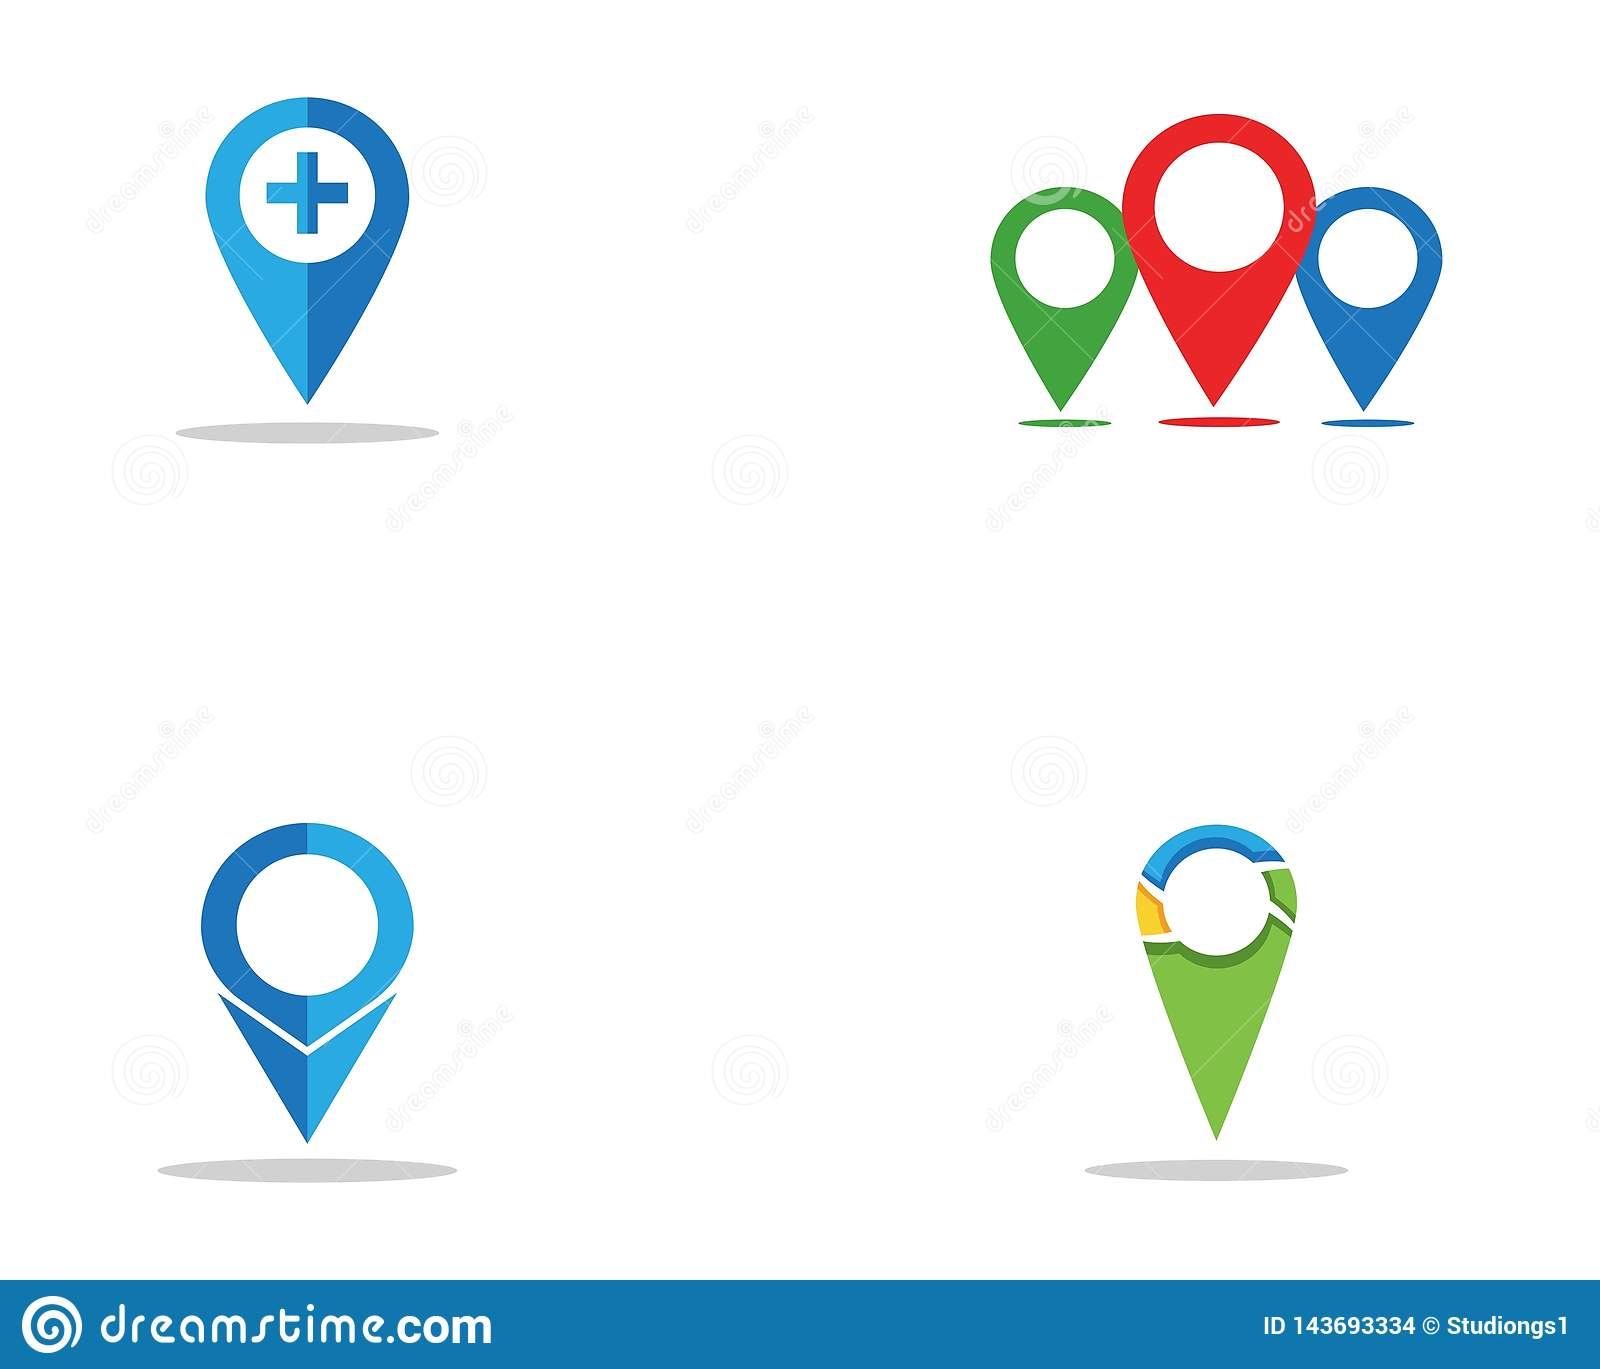 location logo stock illustrations 38 393 location logo stock illustrations vectors clipart dreamstime https www dreamstime com location point logo template vector icon illustration design location point logo template vector icon illustration design image143693334